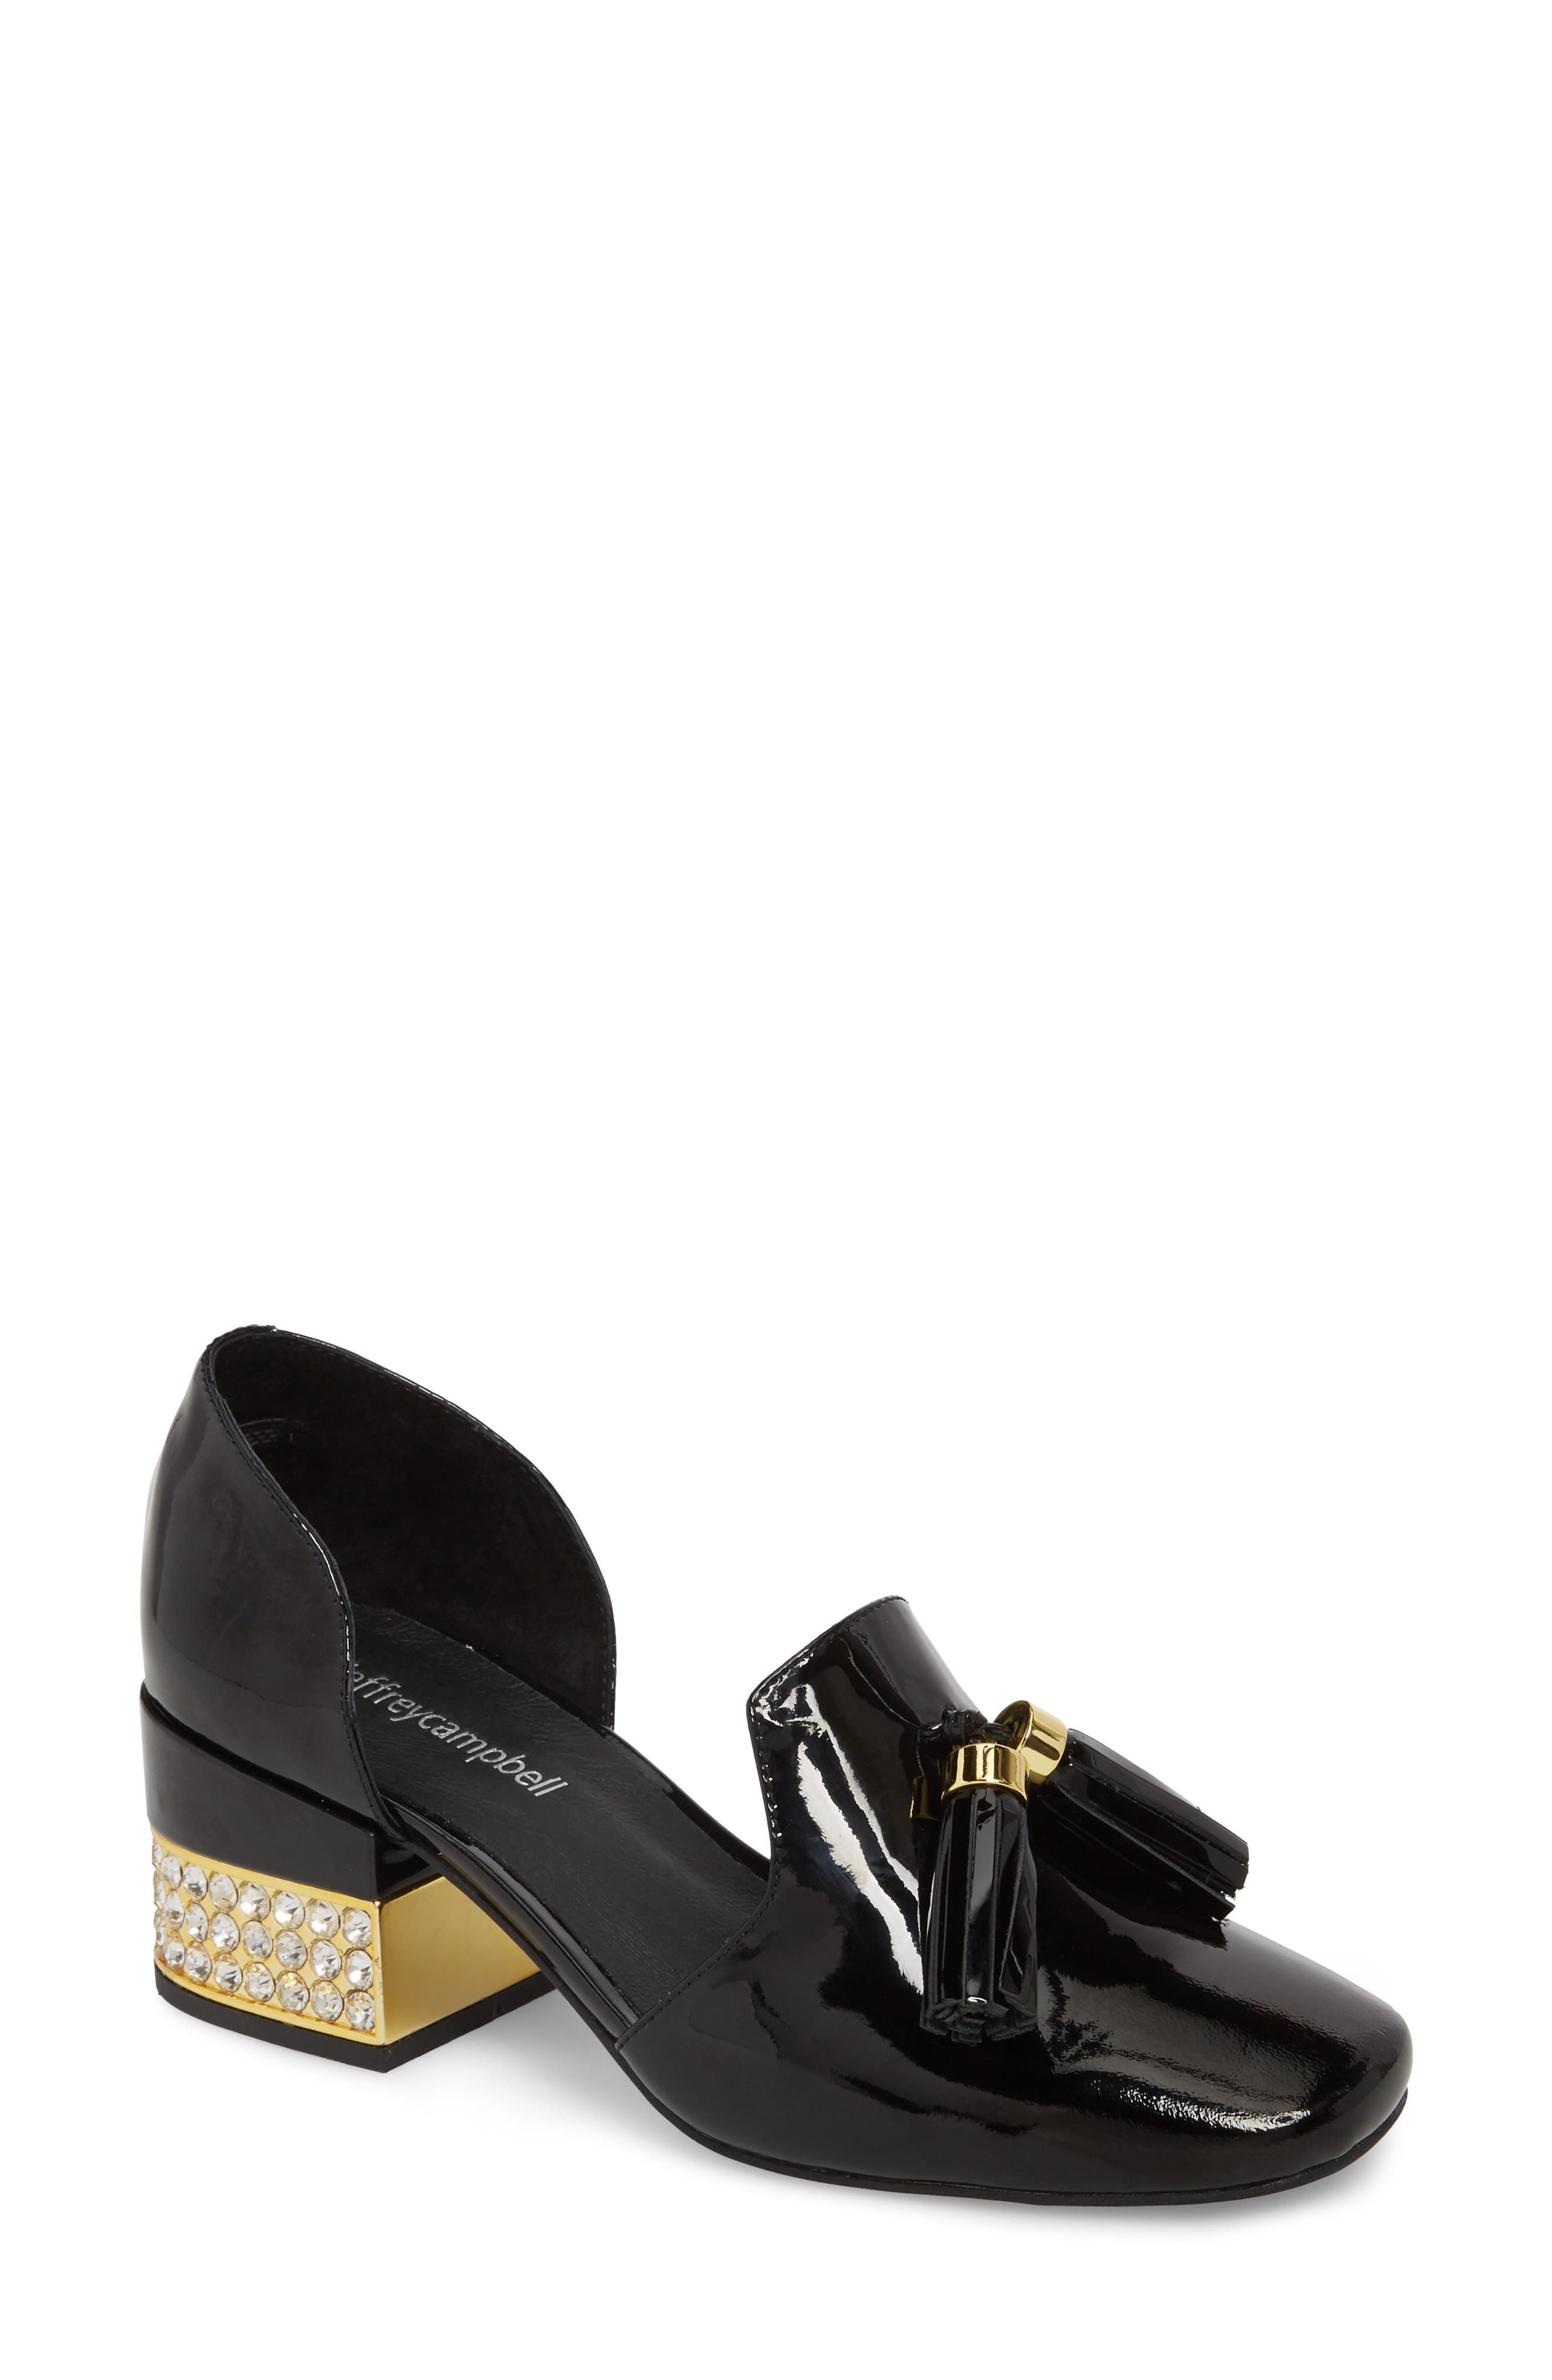 Genial Statement Heel d'Orsay Pump,                             Main thumbnail 1, color,                             Black Patent Leather